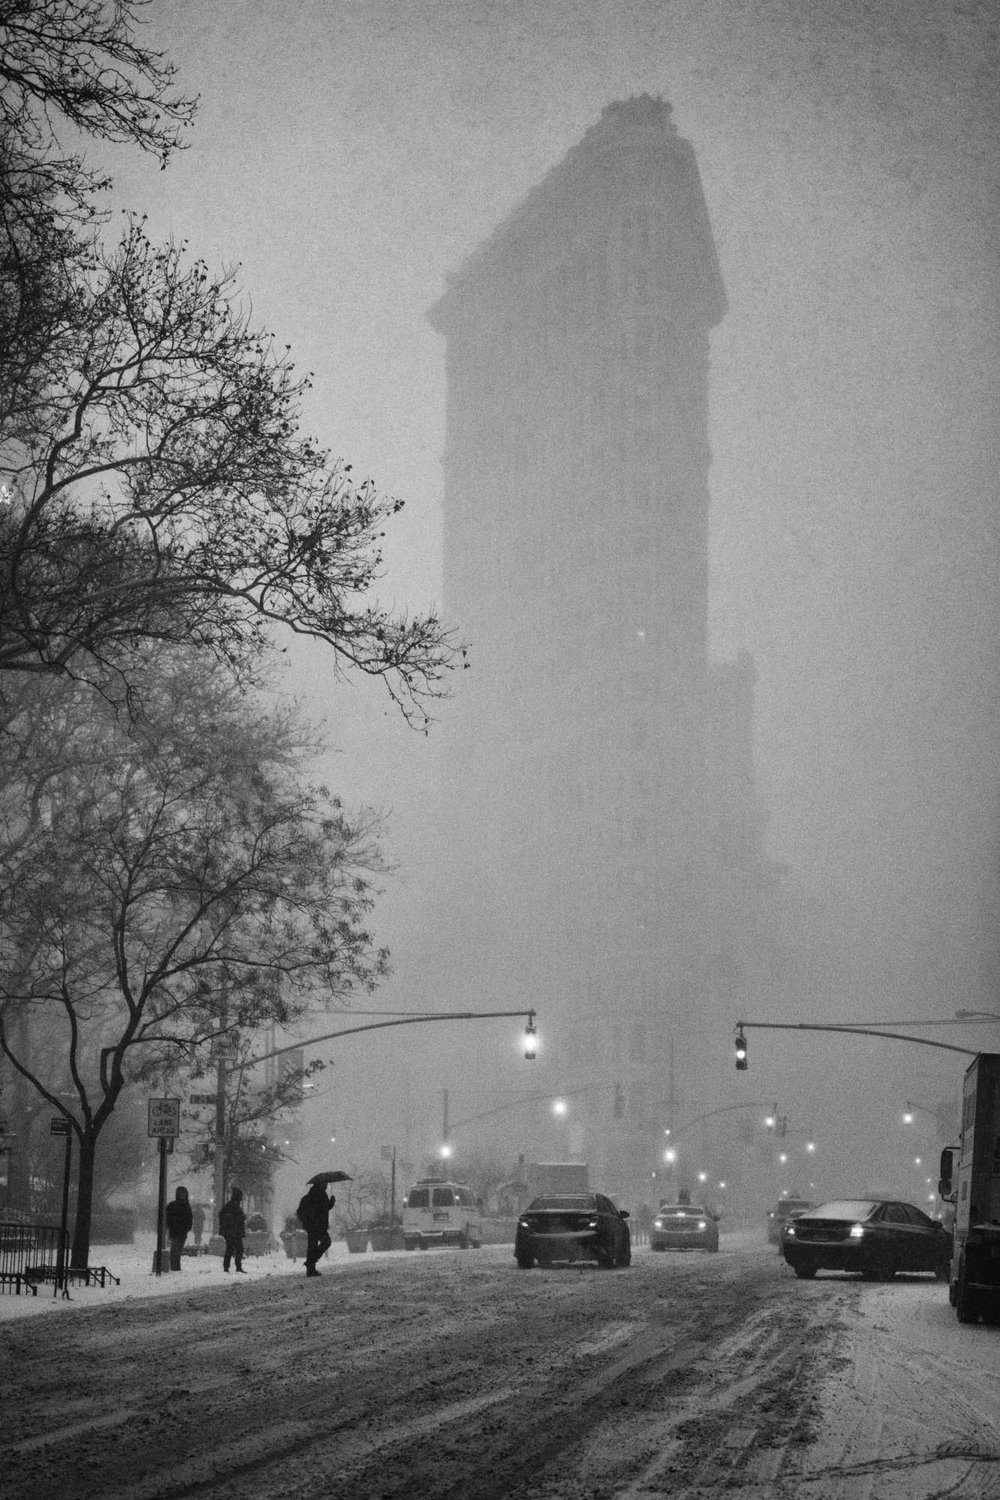 180104_NYC_Snowstorm_View_045.jpg